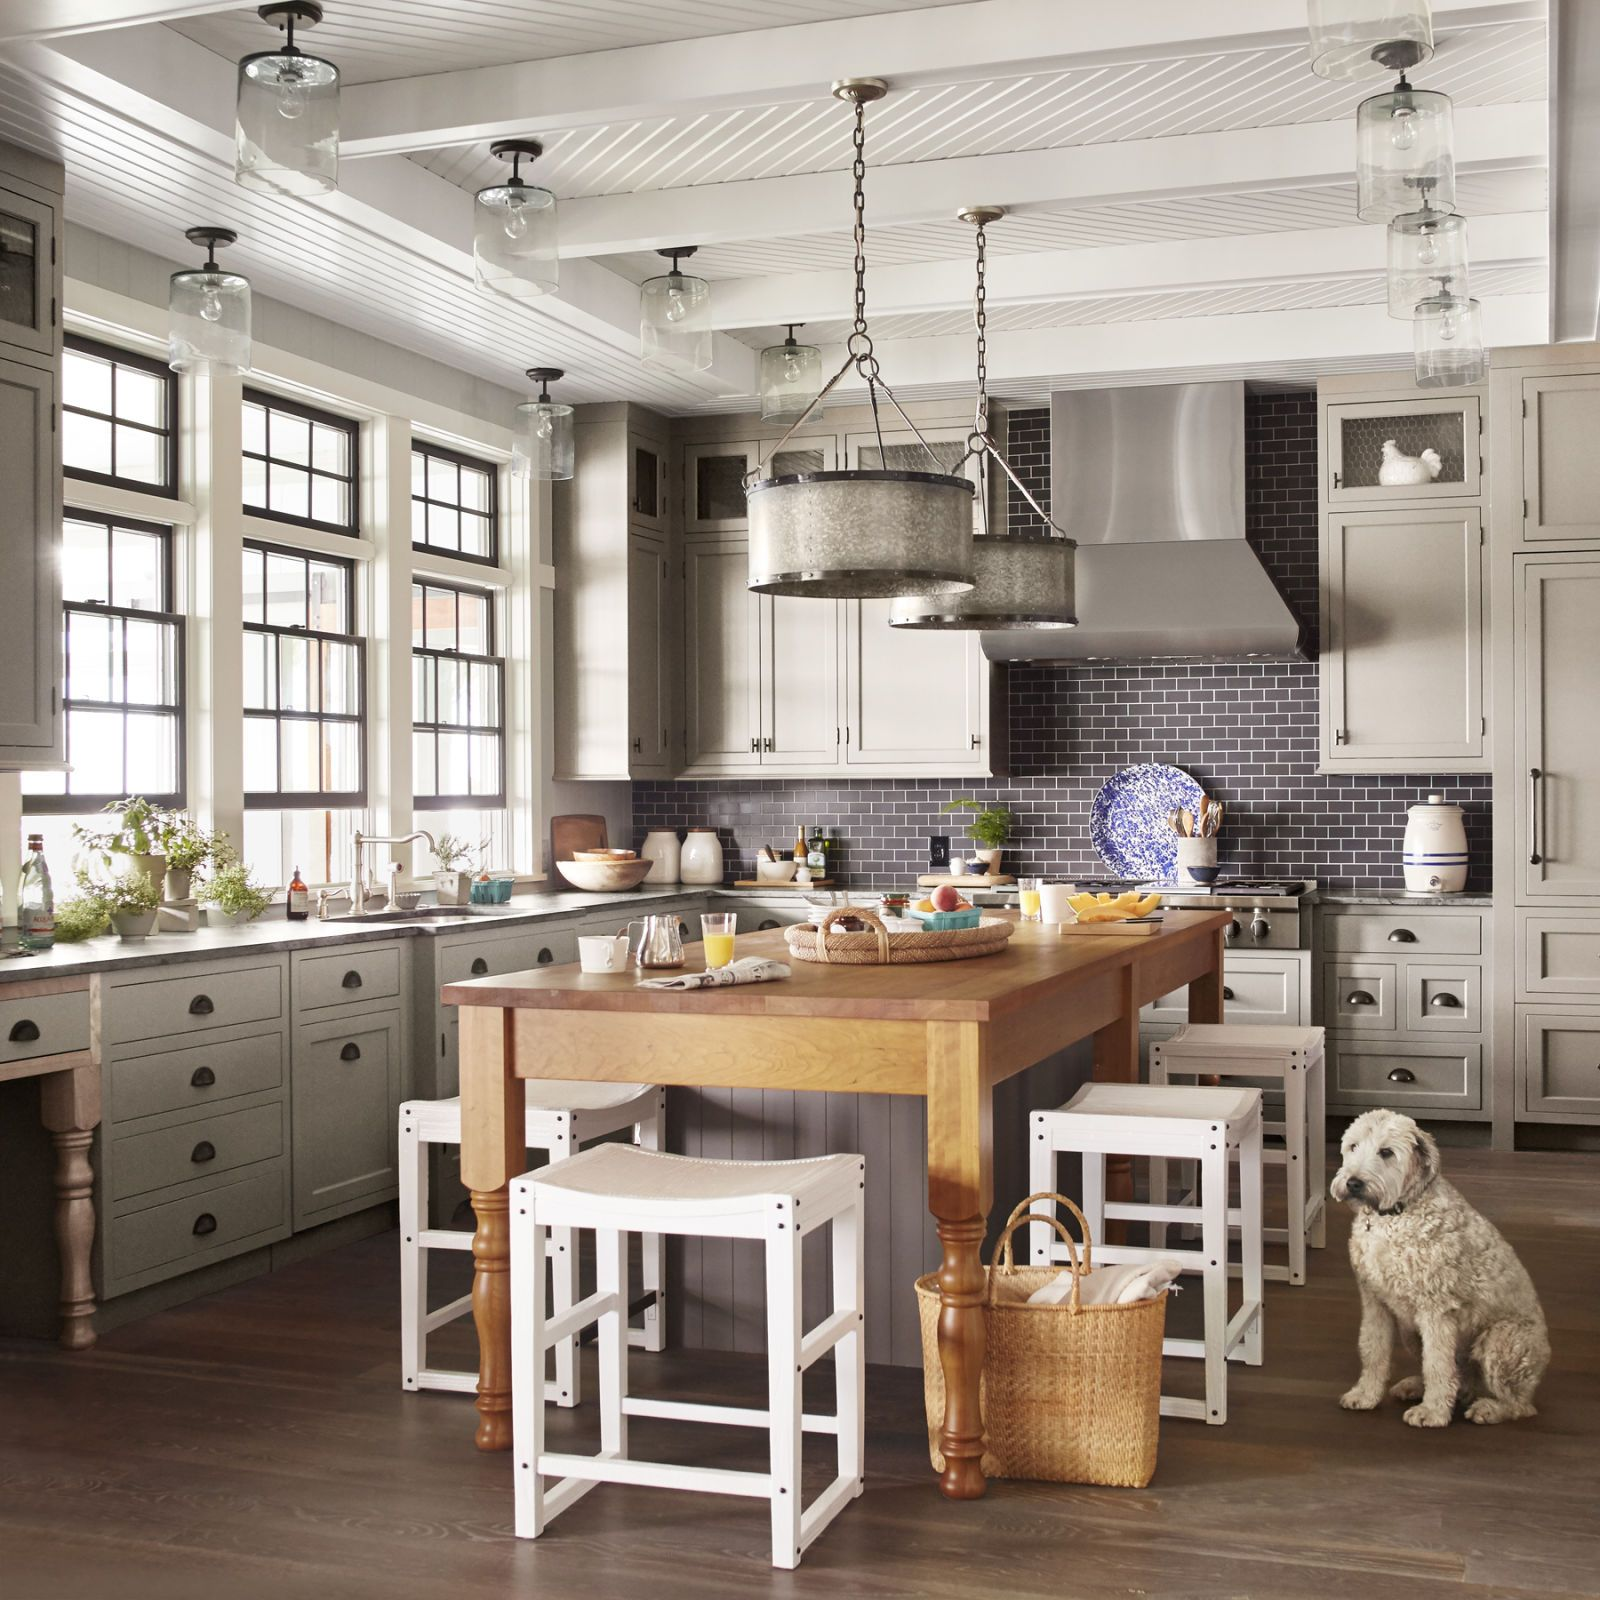 10 Amazing Rustic Kitchen Decor Ideas: 10 Essential Rules For Decorating A Lake House